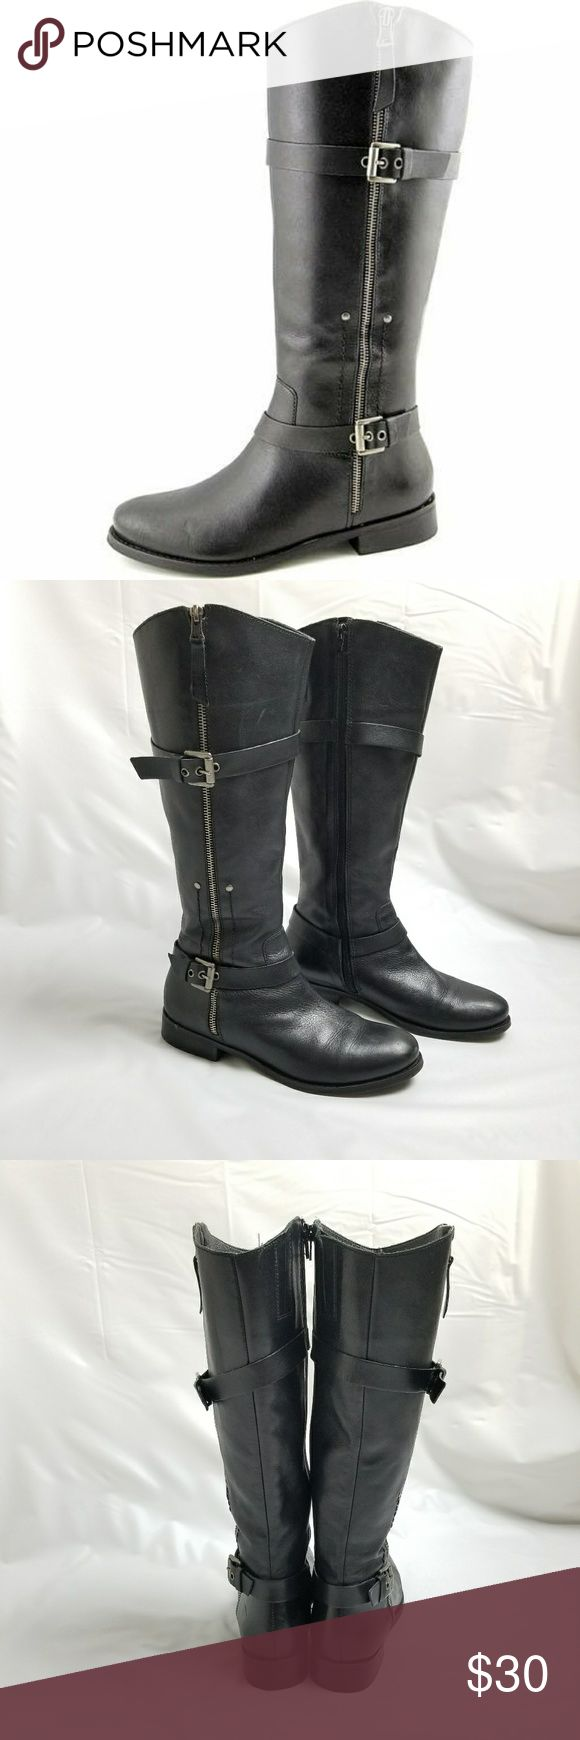 Matisse Militia Riding Boots Size 8.5M Great Condition,  normal signs of wear. Size 8.5M I would recommend them for narrow feet. Very comfortable.   Boot Height: Knee-High Boots Heel Height: Low Heel Style: Riding Boots Material: Leather Toe Shape: Round Shoe Width: Medium Matisse Shoes Combat & Moto Boots